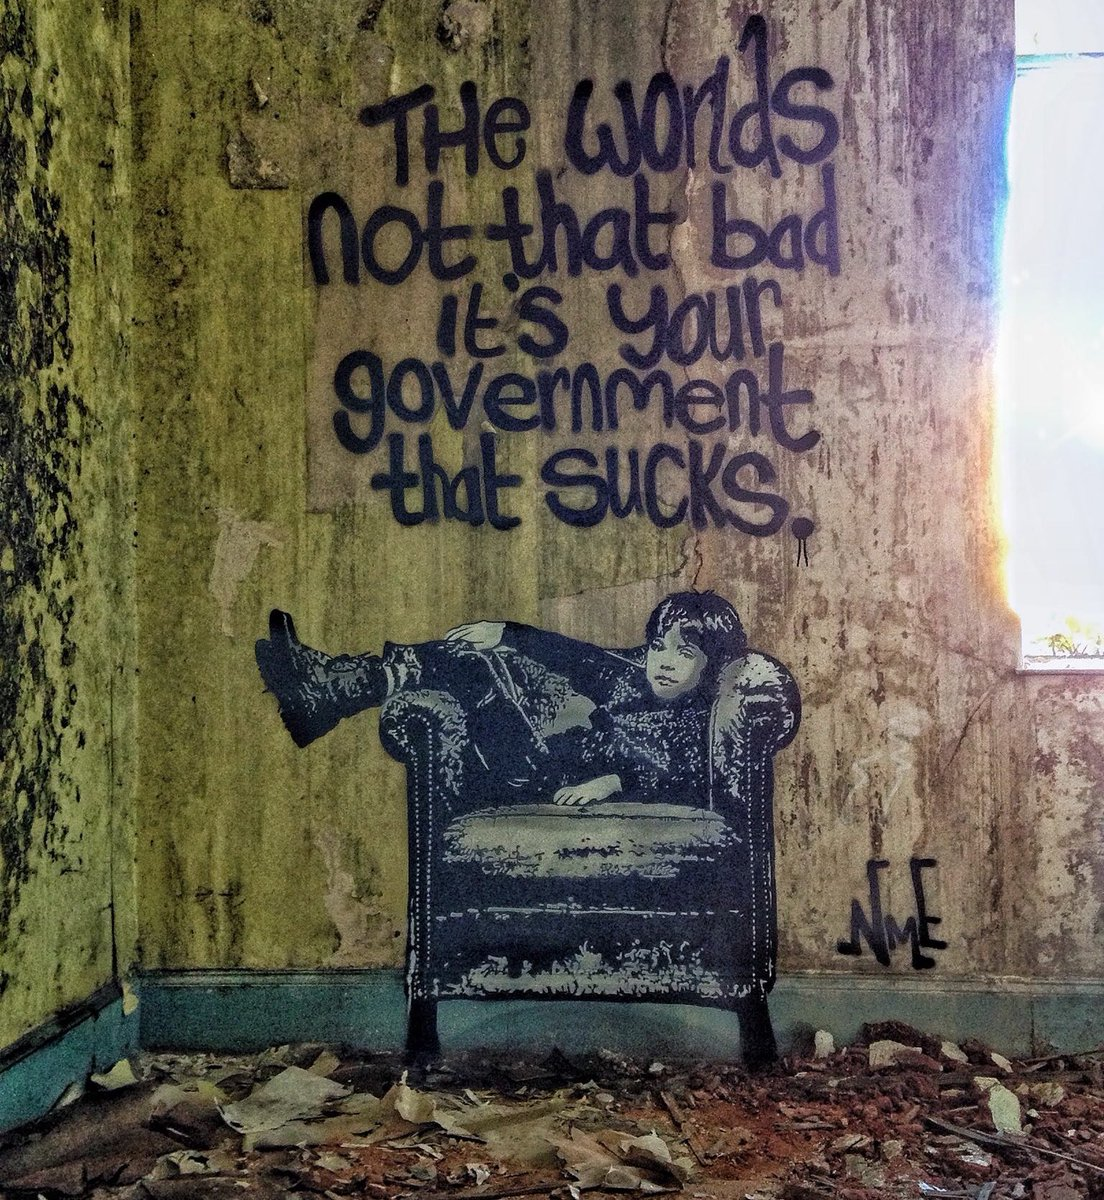 20 brilliant depictions of street art for free thinkers rebels